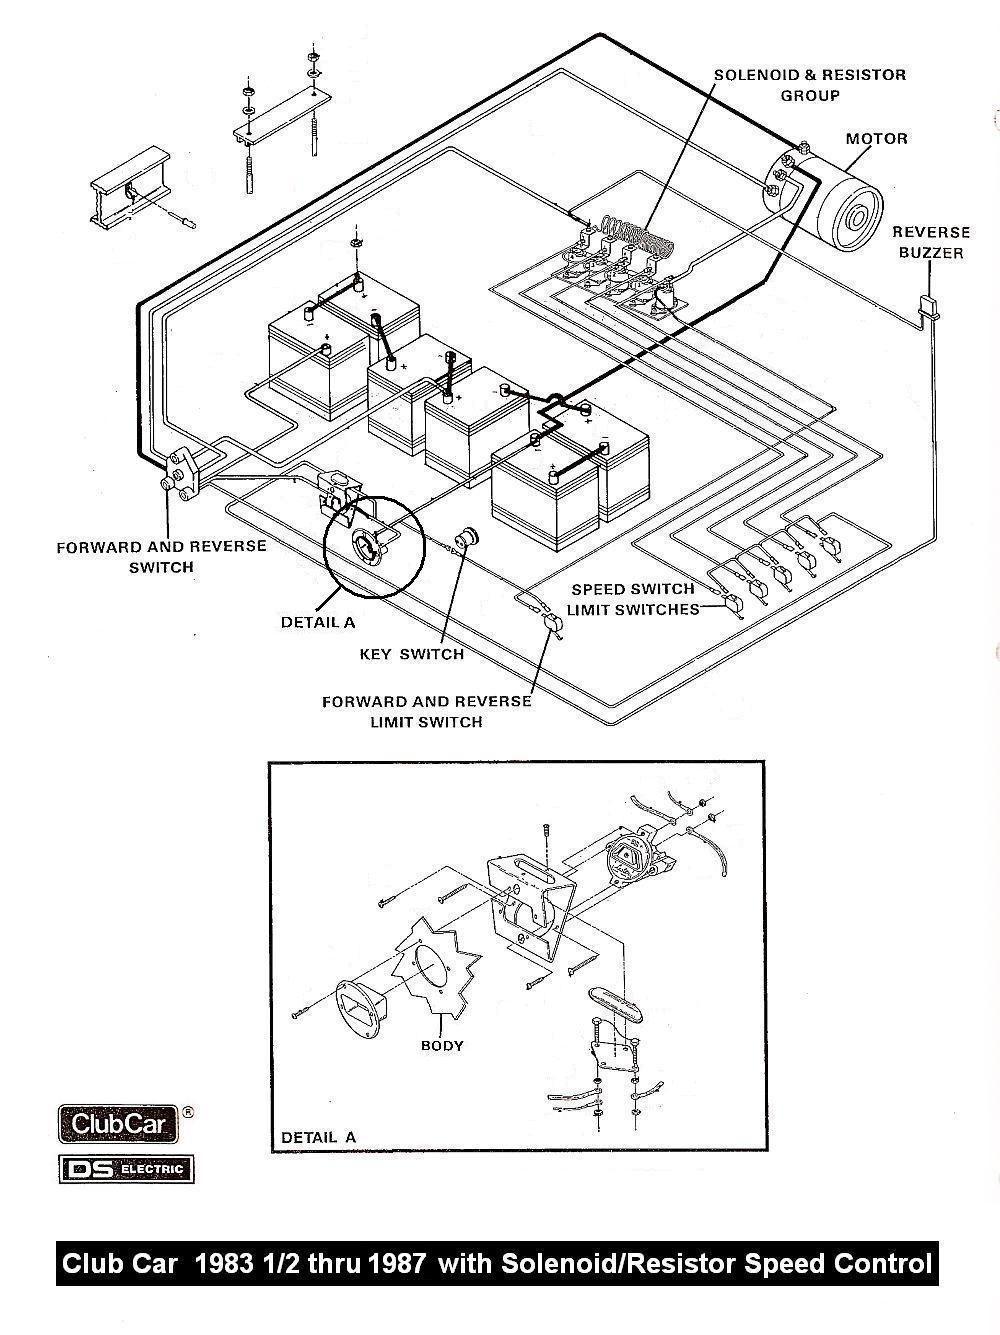 vintagegolfcartparts com zer crock pot wiring diagram electric club car wiring diagrams club car wiring diagram 36 volt club car 1983 1 per thru 1987 solenoid or resistor speed control